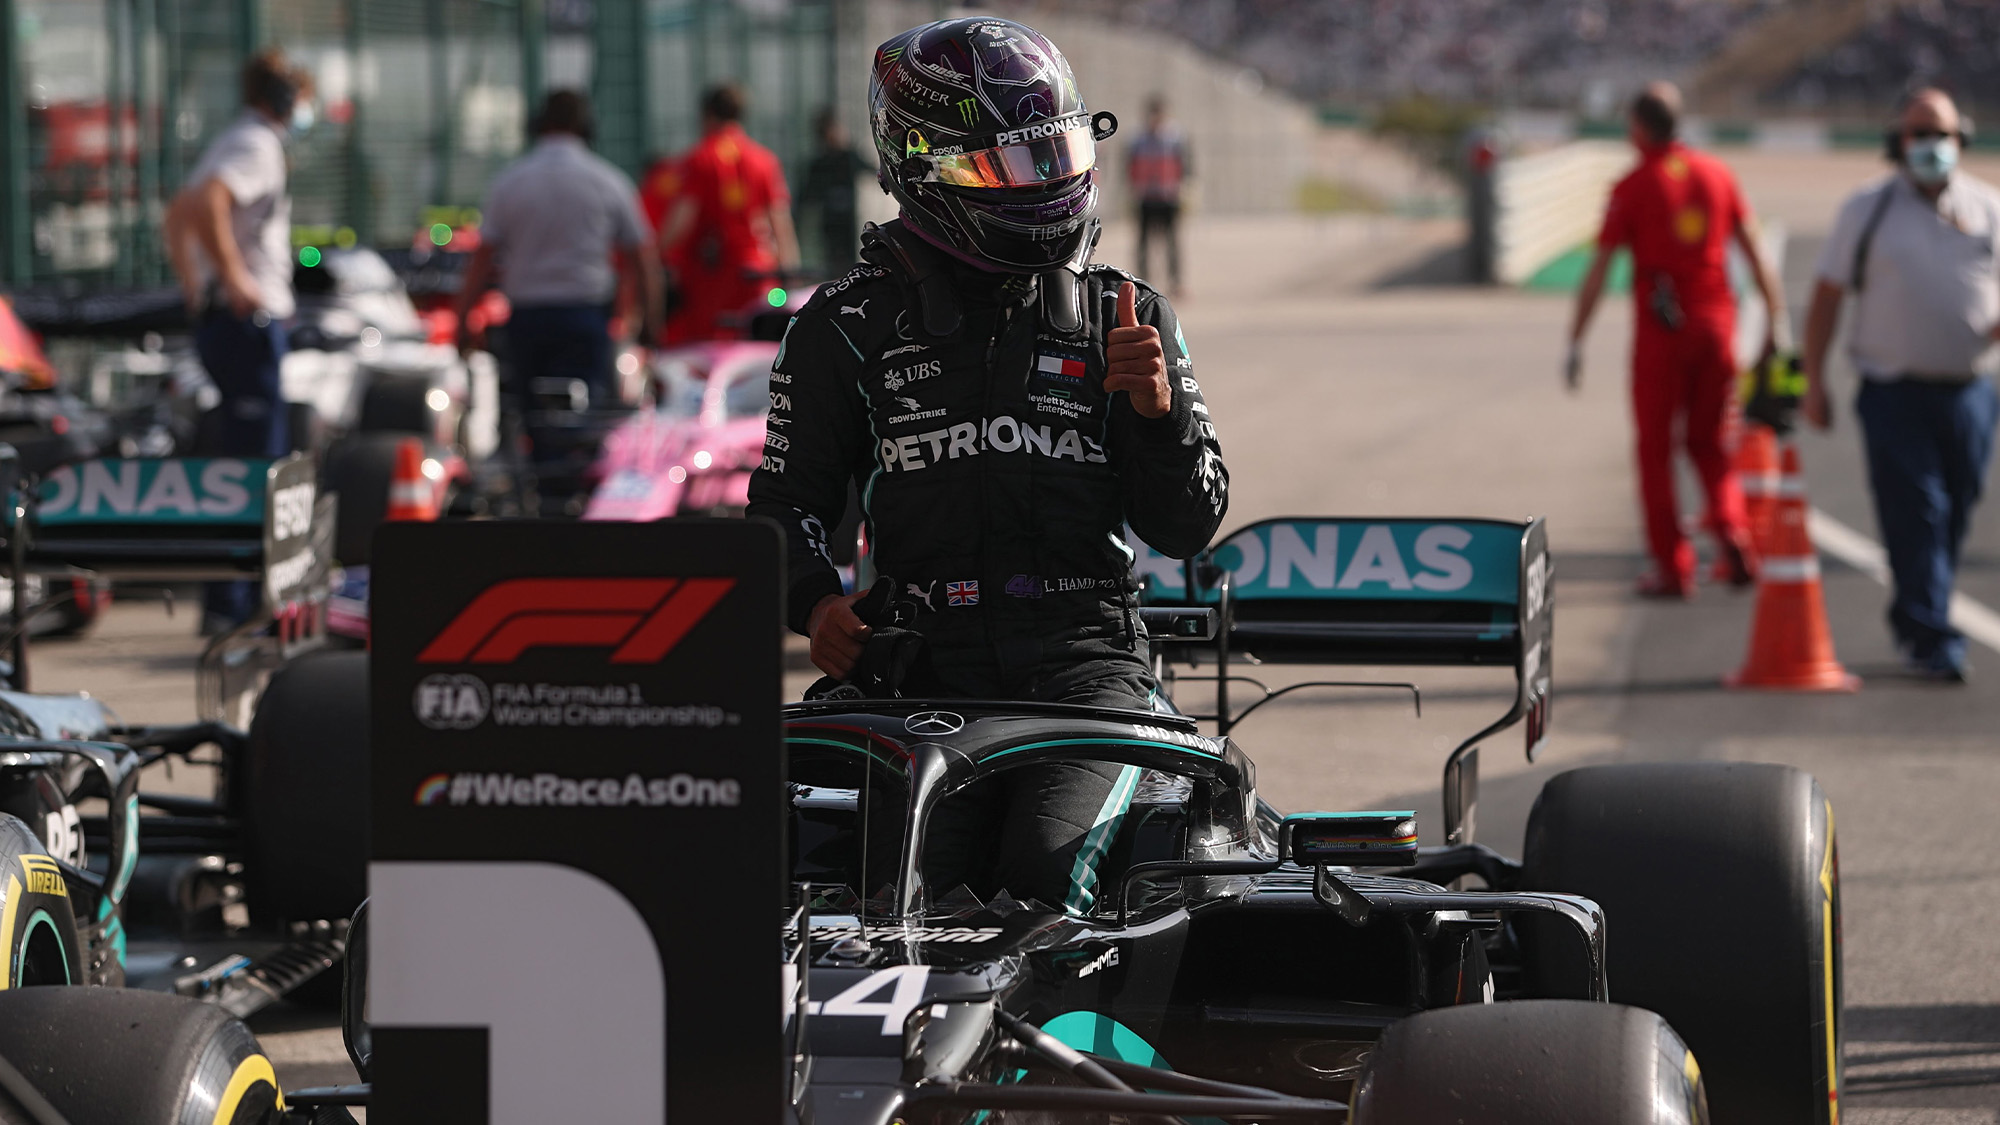 2020 Portuguese Grand Prix qualifying: over-confident Bottas misses out on pole